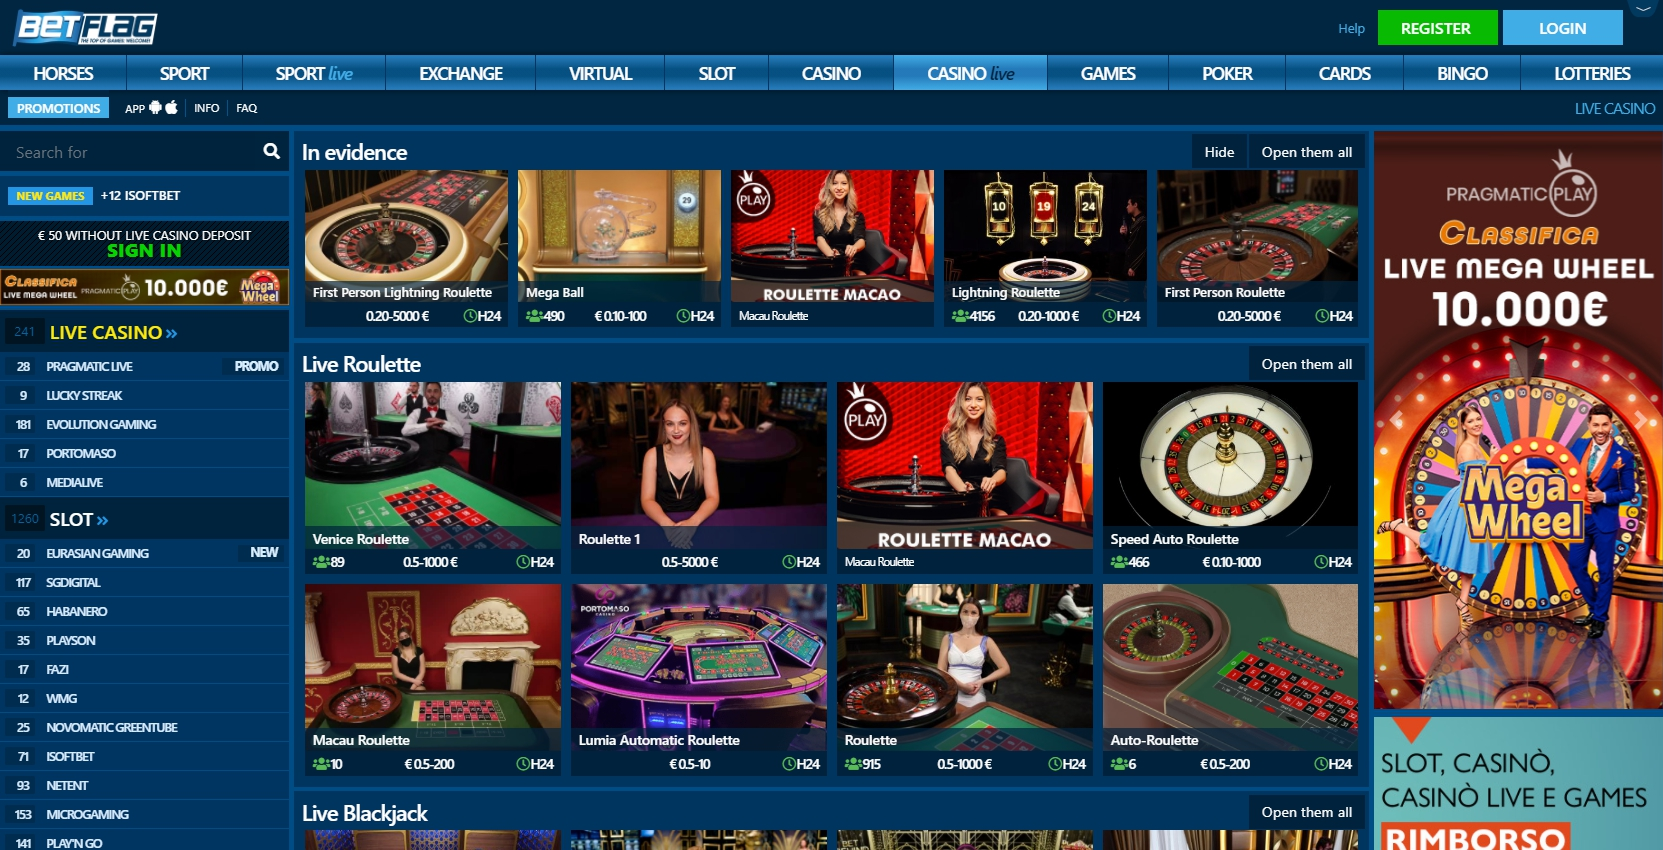 Betflag Casino Live Dealer Games